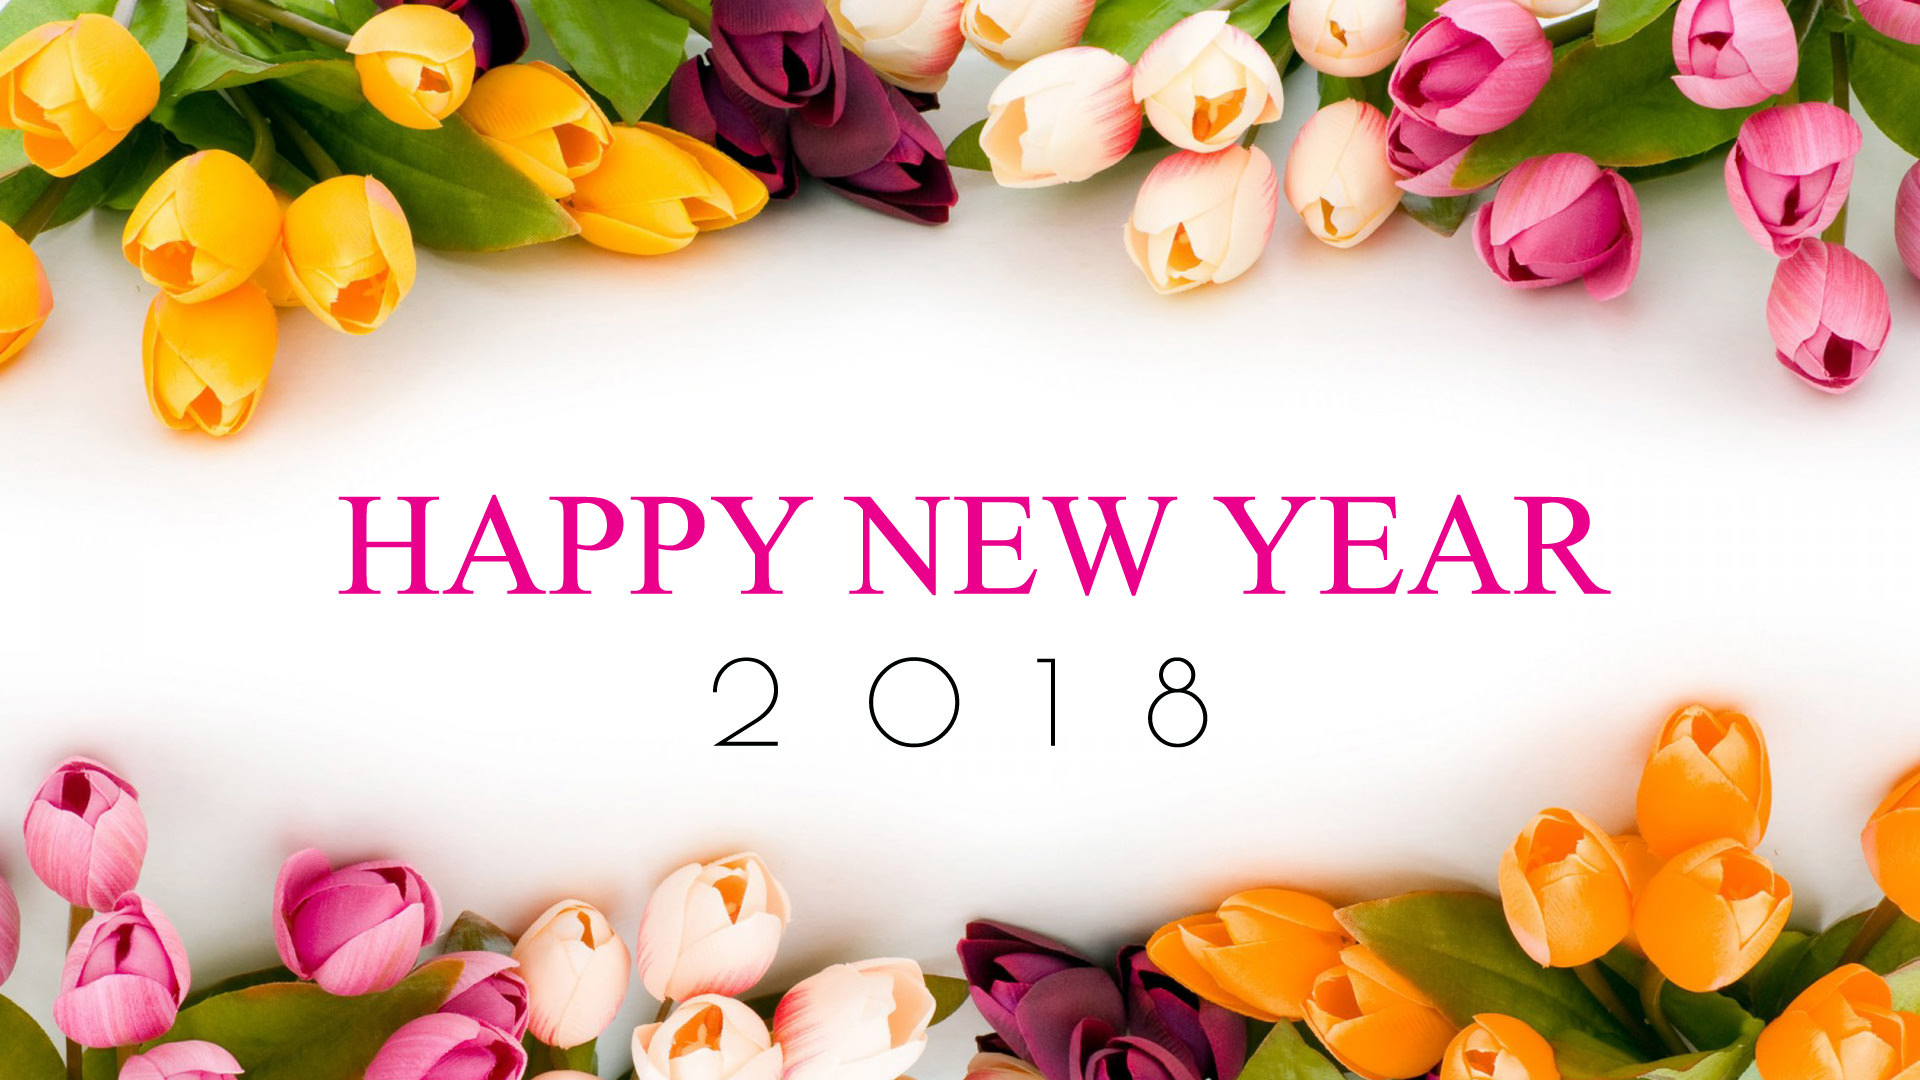 happy new year 2018 flowers wallpaper